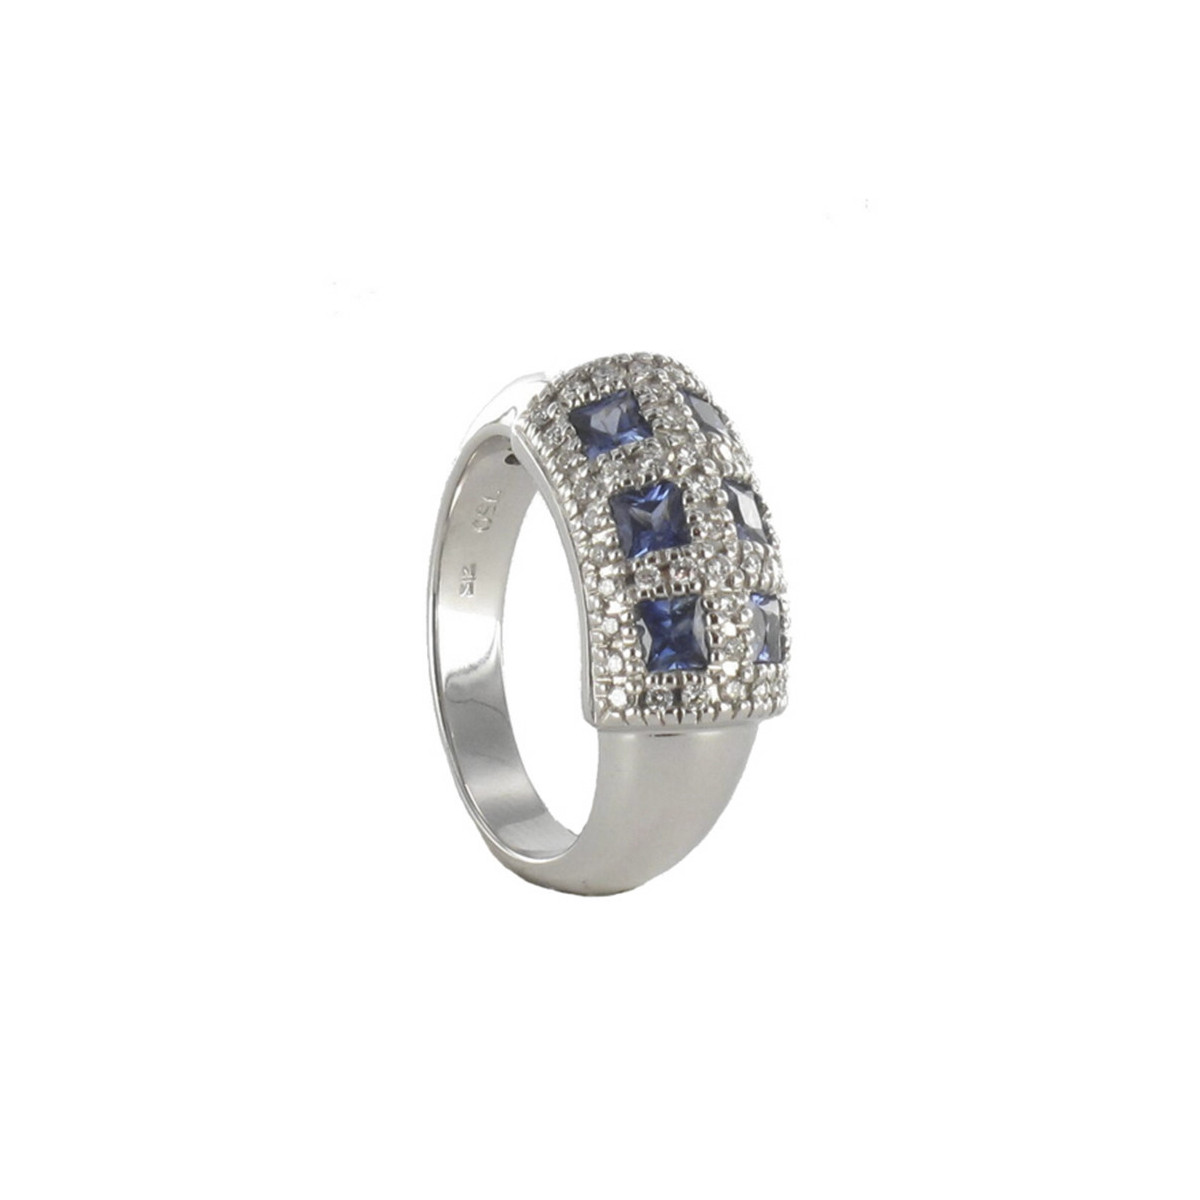 WHITE GOLD RING WITH 6 SAPPHIRES 0.90 CARATS